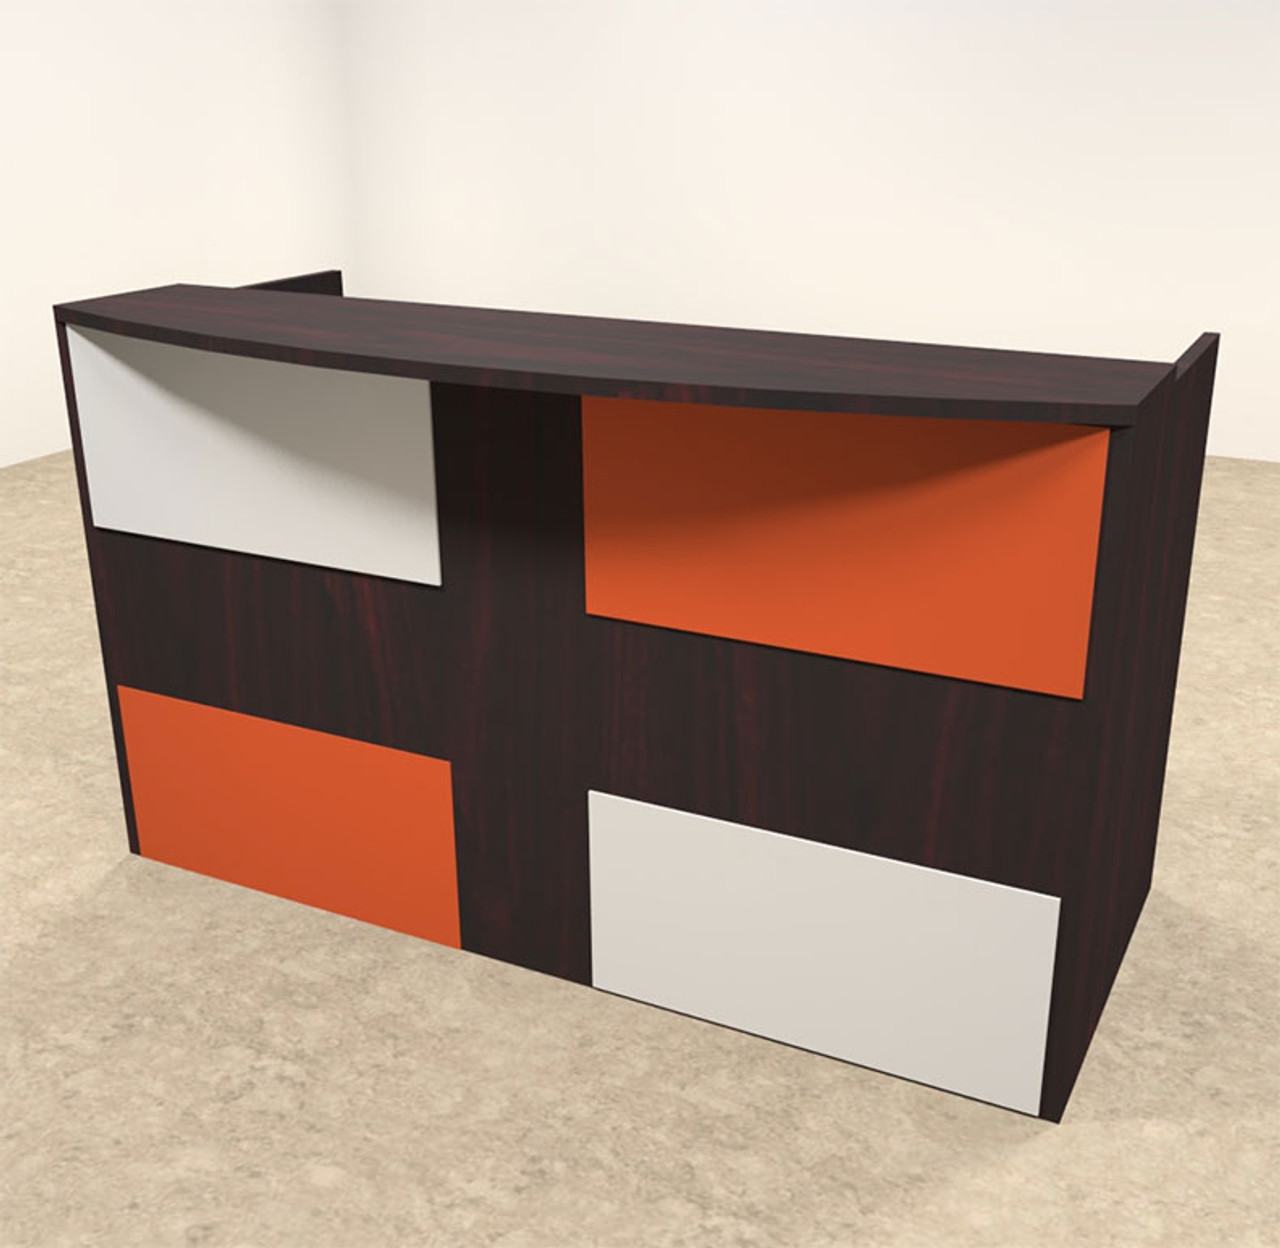 2pc Rectangular Modern Acrylic Panel Office Reception Desk, #OT-SUL-RM39